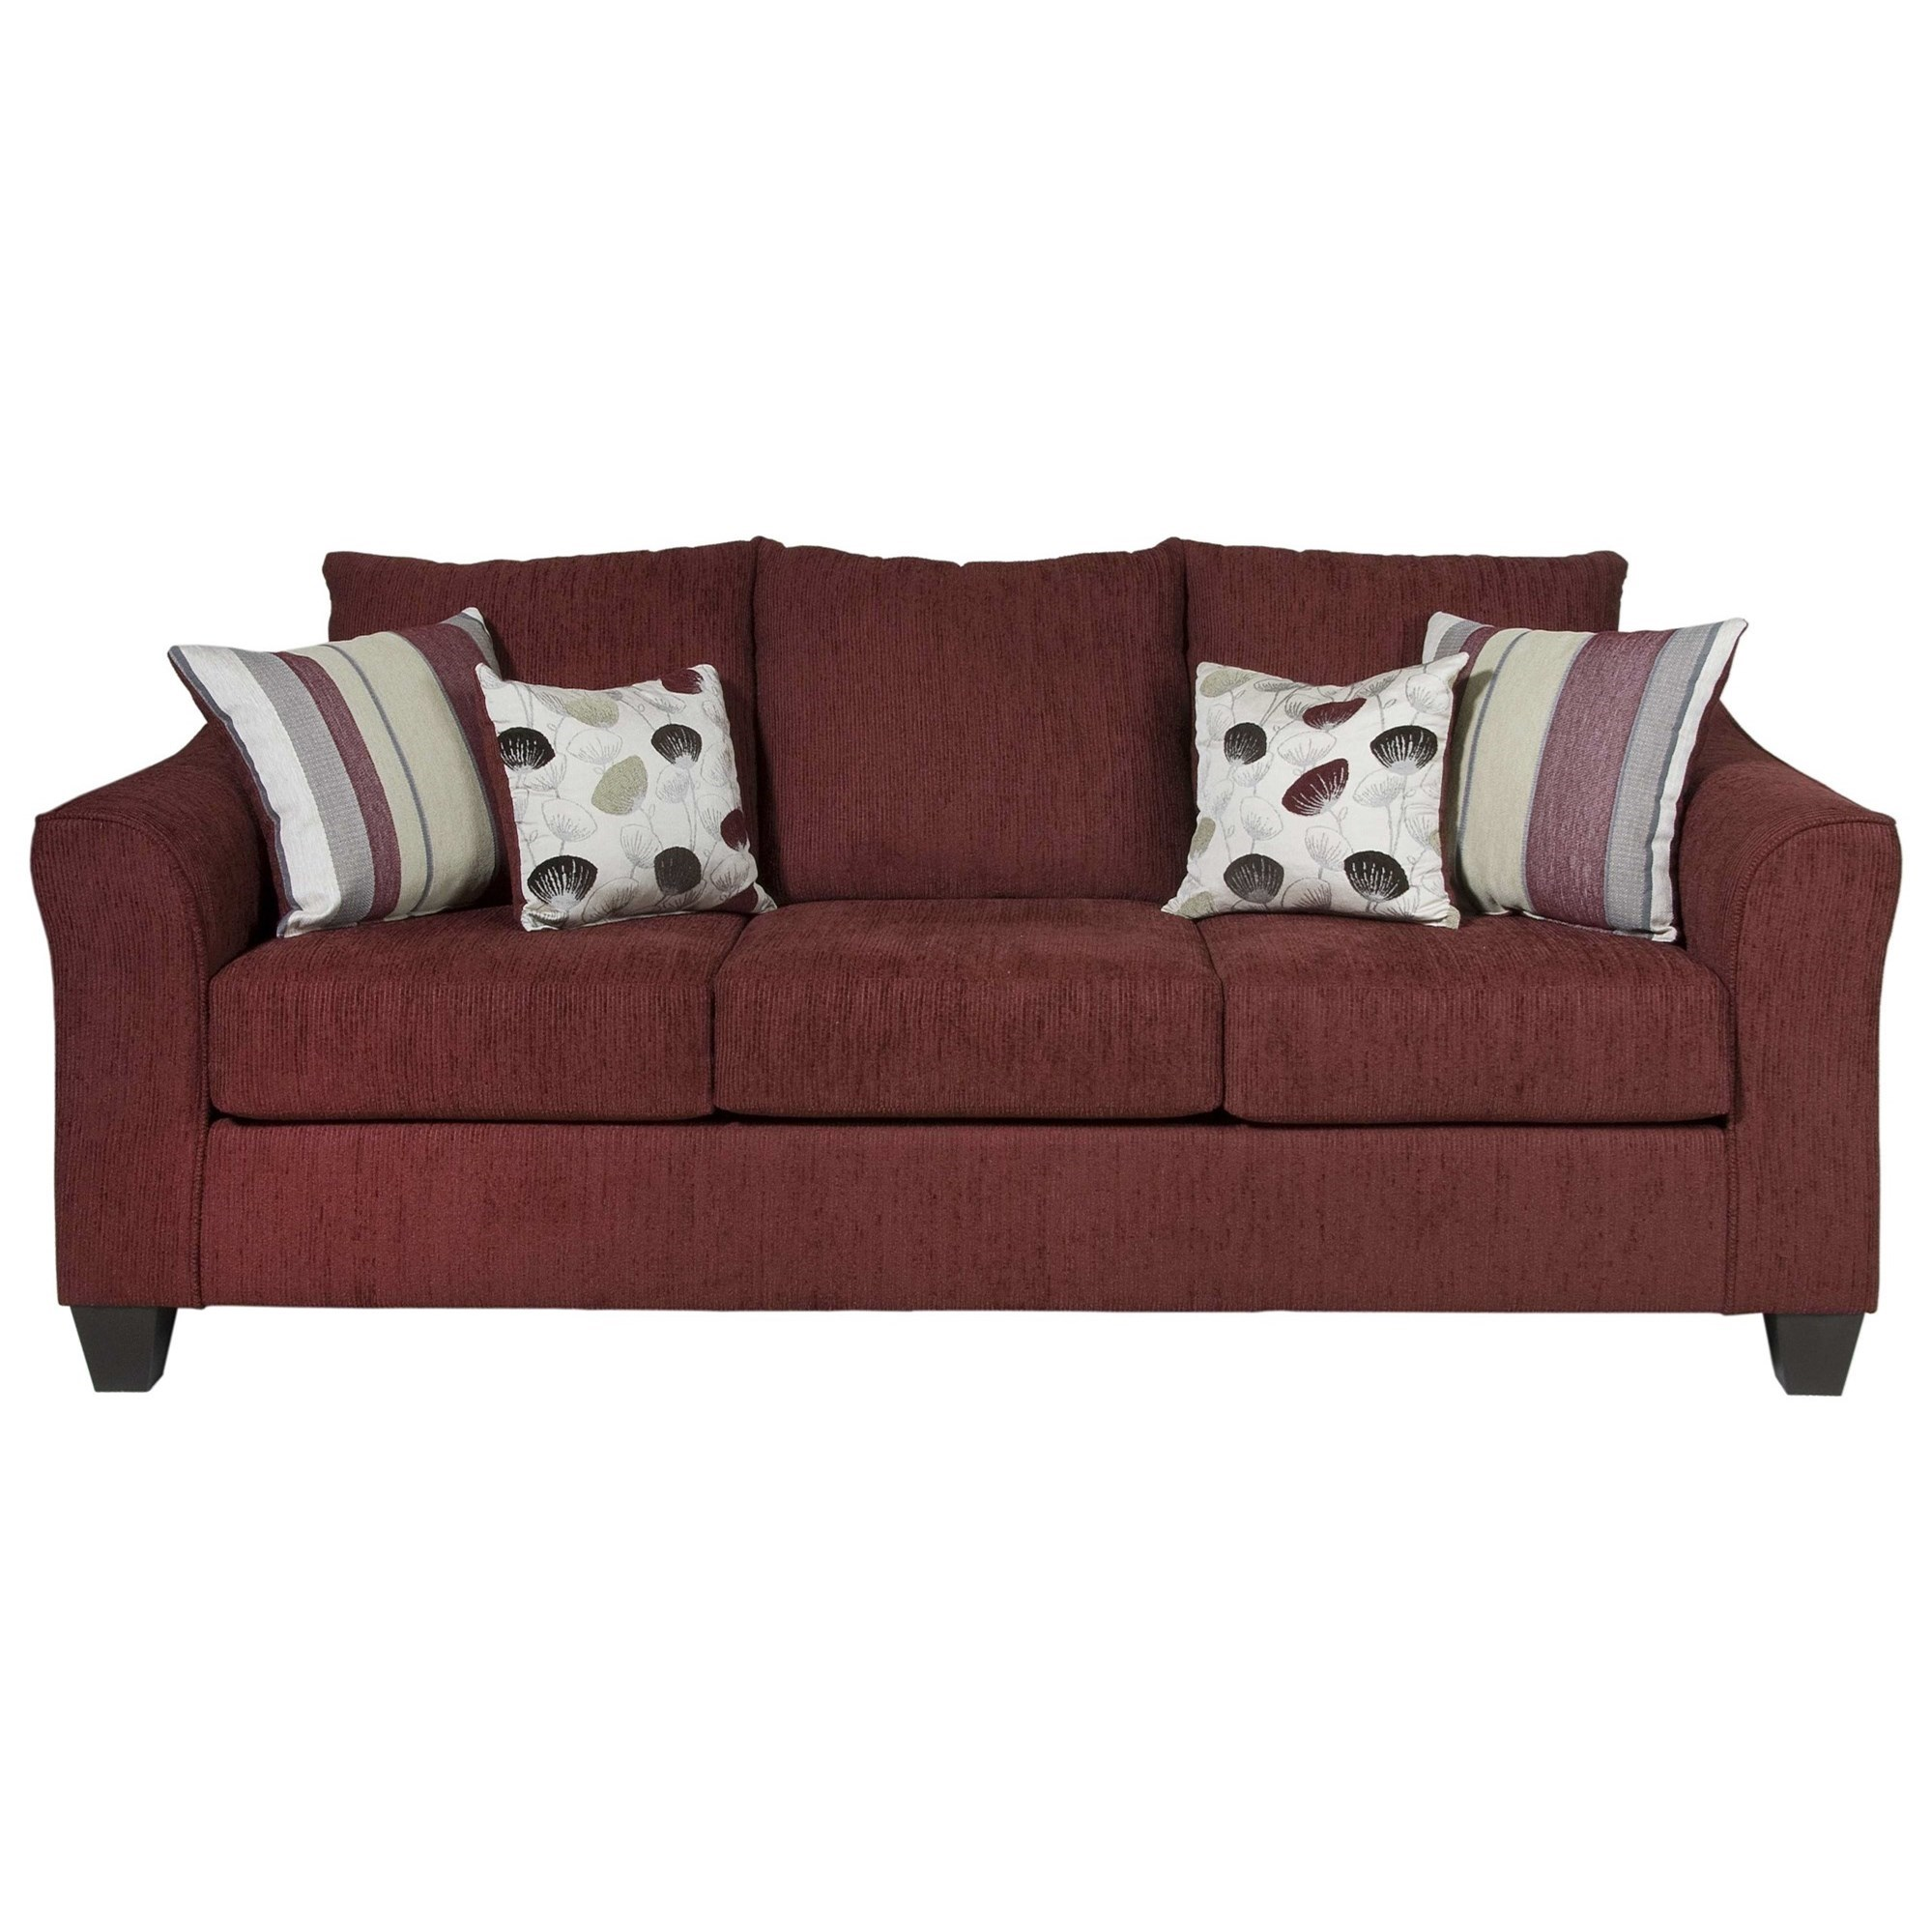 1225 Casual Upholstered Sofa by Serta Upholstery by Hughes Furniture at Rooms for Less